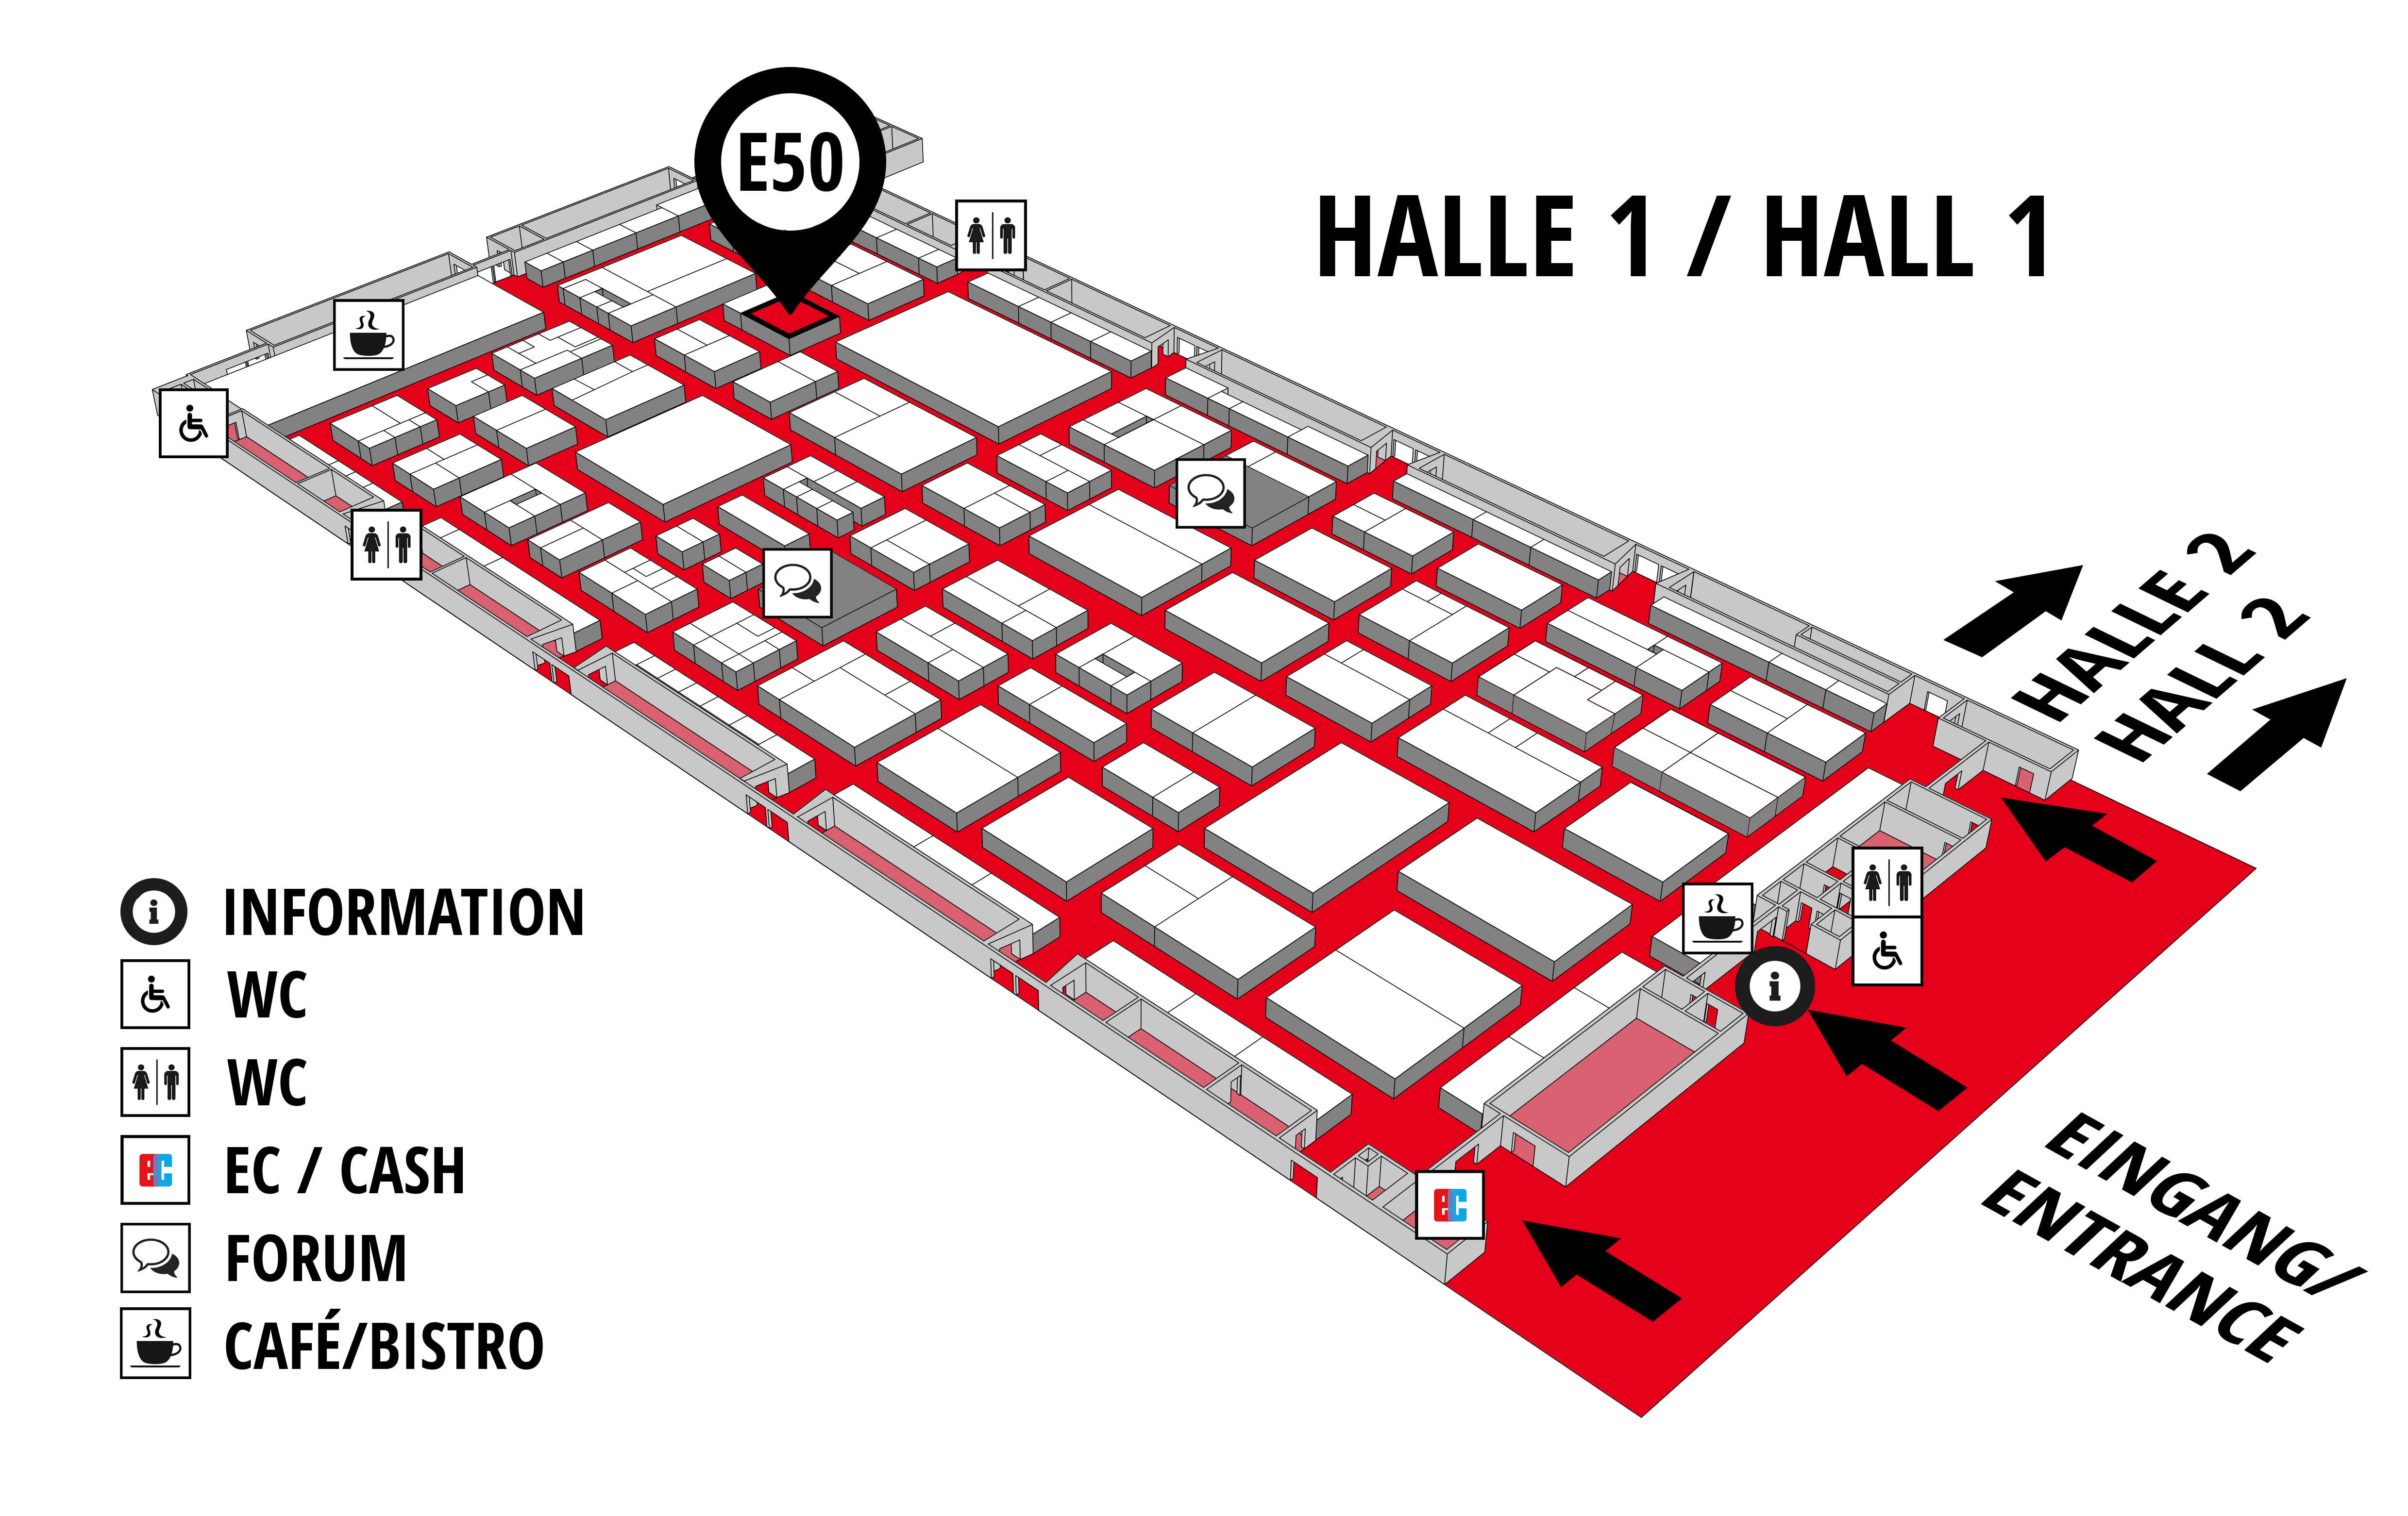 REHAB - Rehabilitation | Therapy | Care | Inclusion hall map (Hall 1): stand E50